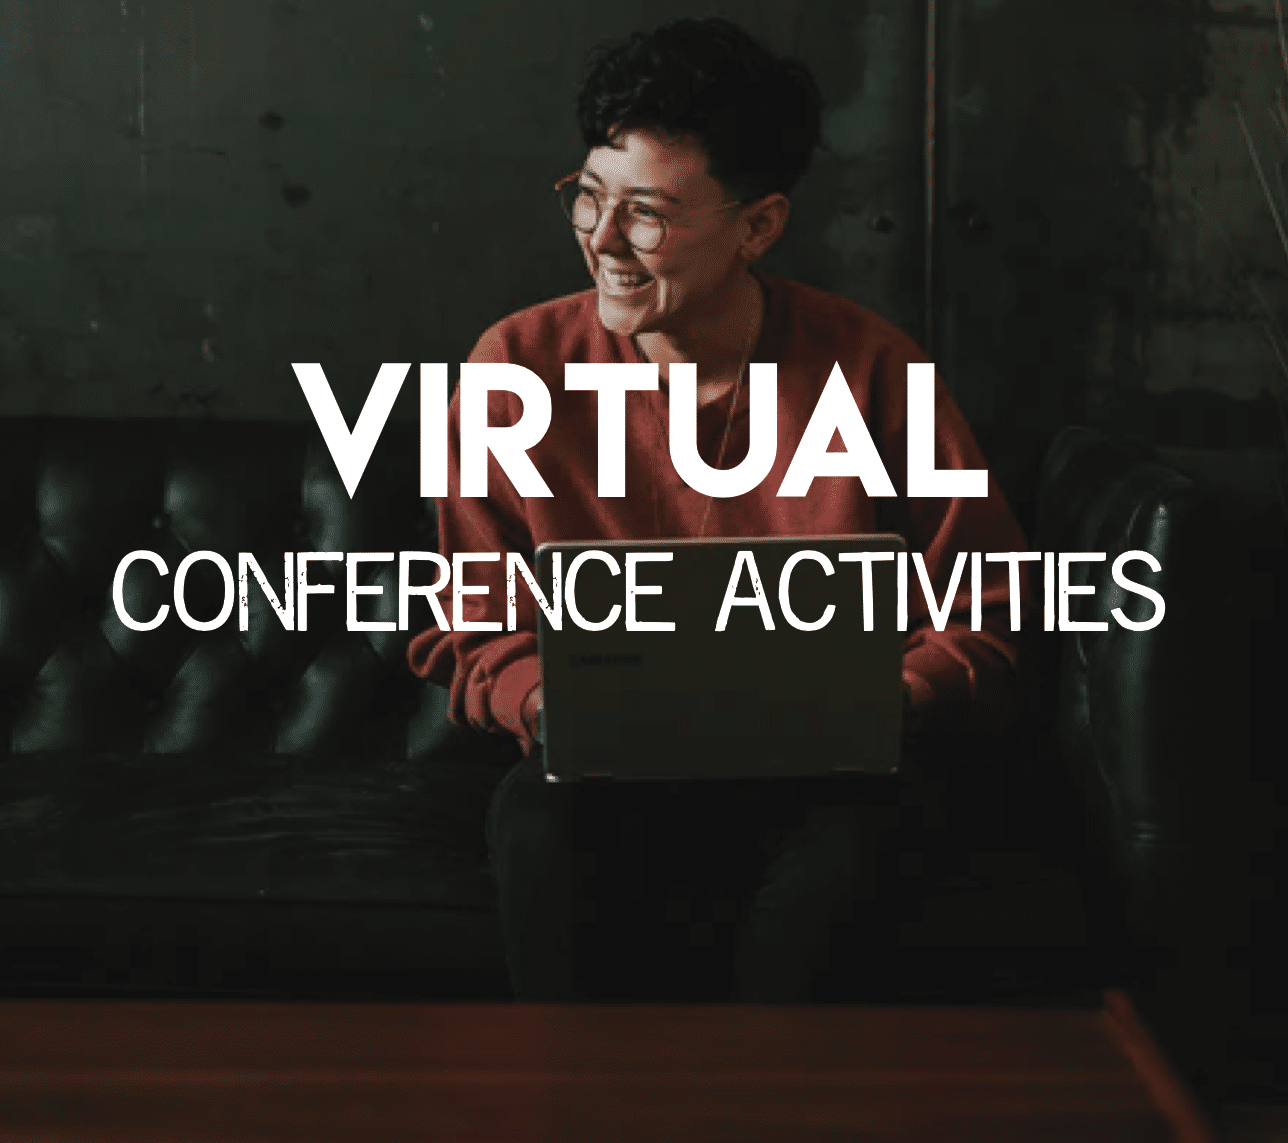 Virtual Conference Activities